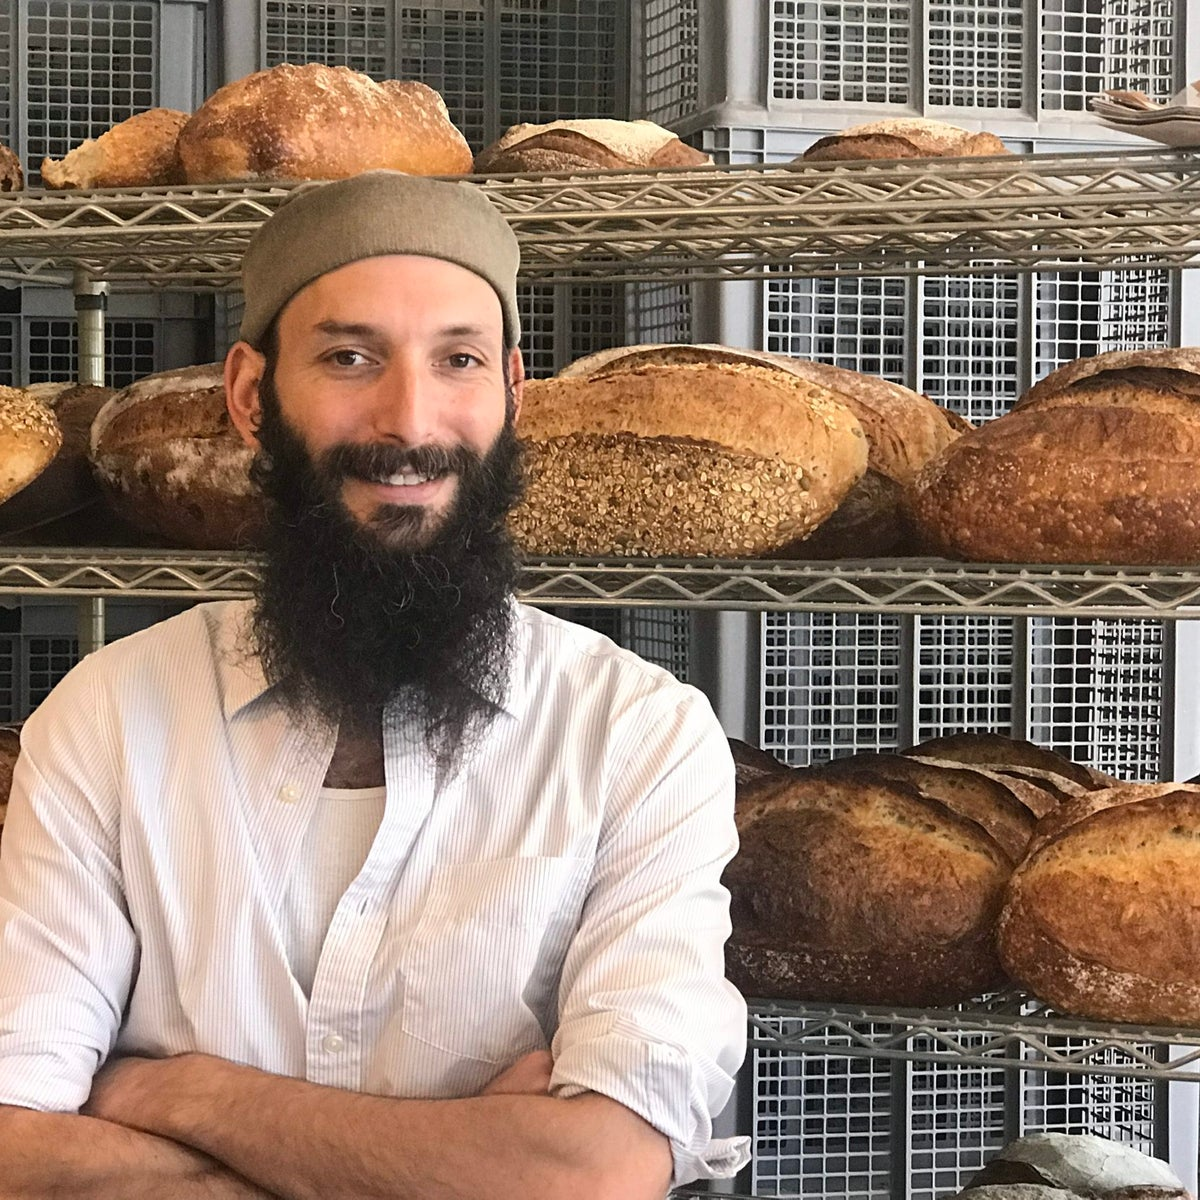 Zak Stern (aka Zak the Baker) at his bakery in Miami.